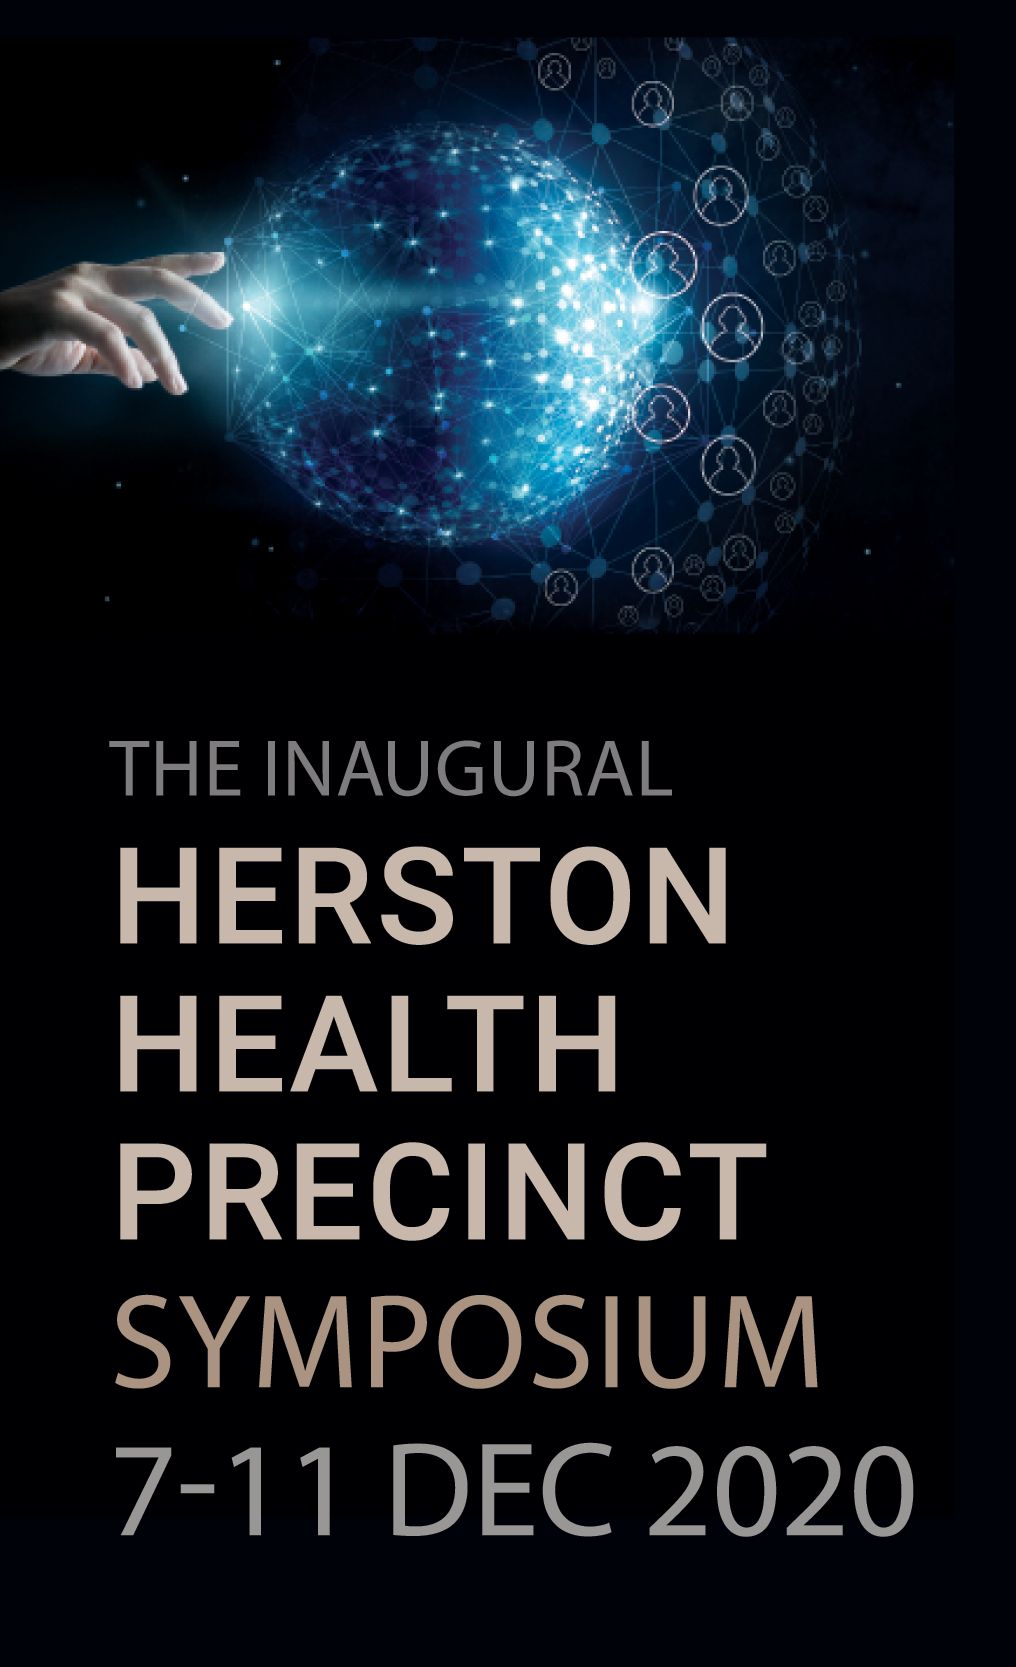 Herston Health Precinct Symposium